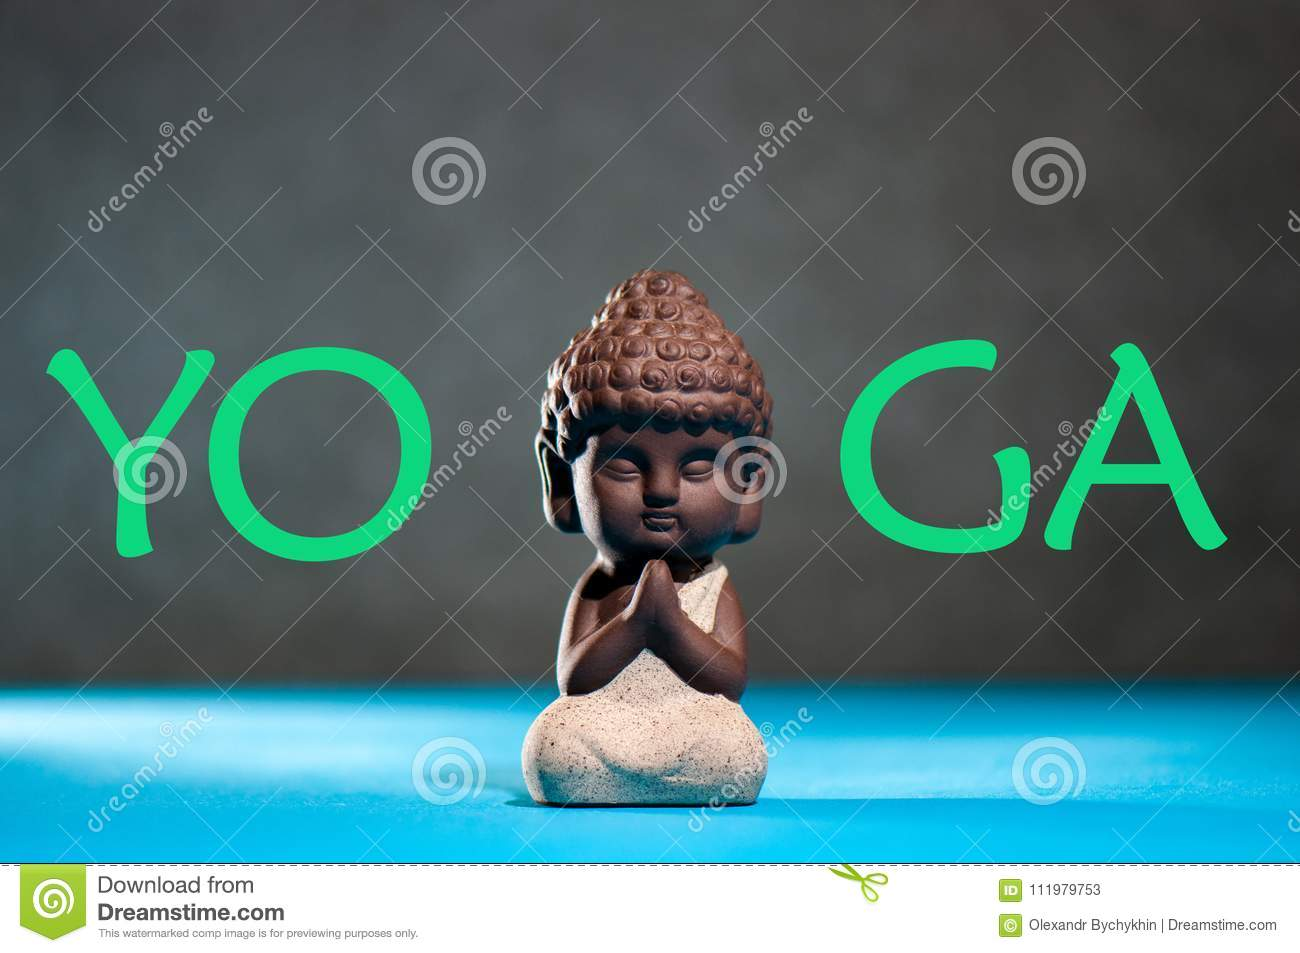 Yoga Little Buddha With His Hand In Greeting Sign Namaste And Yoga